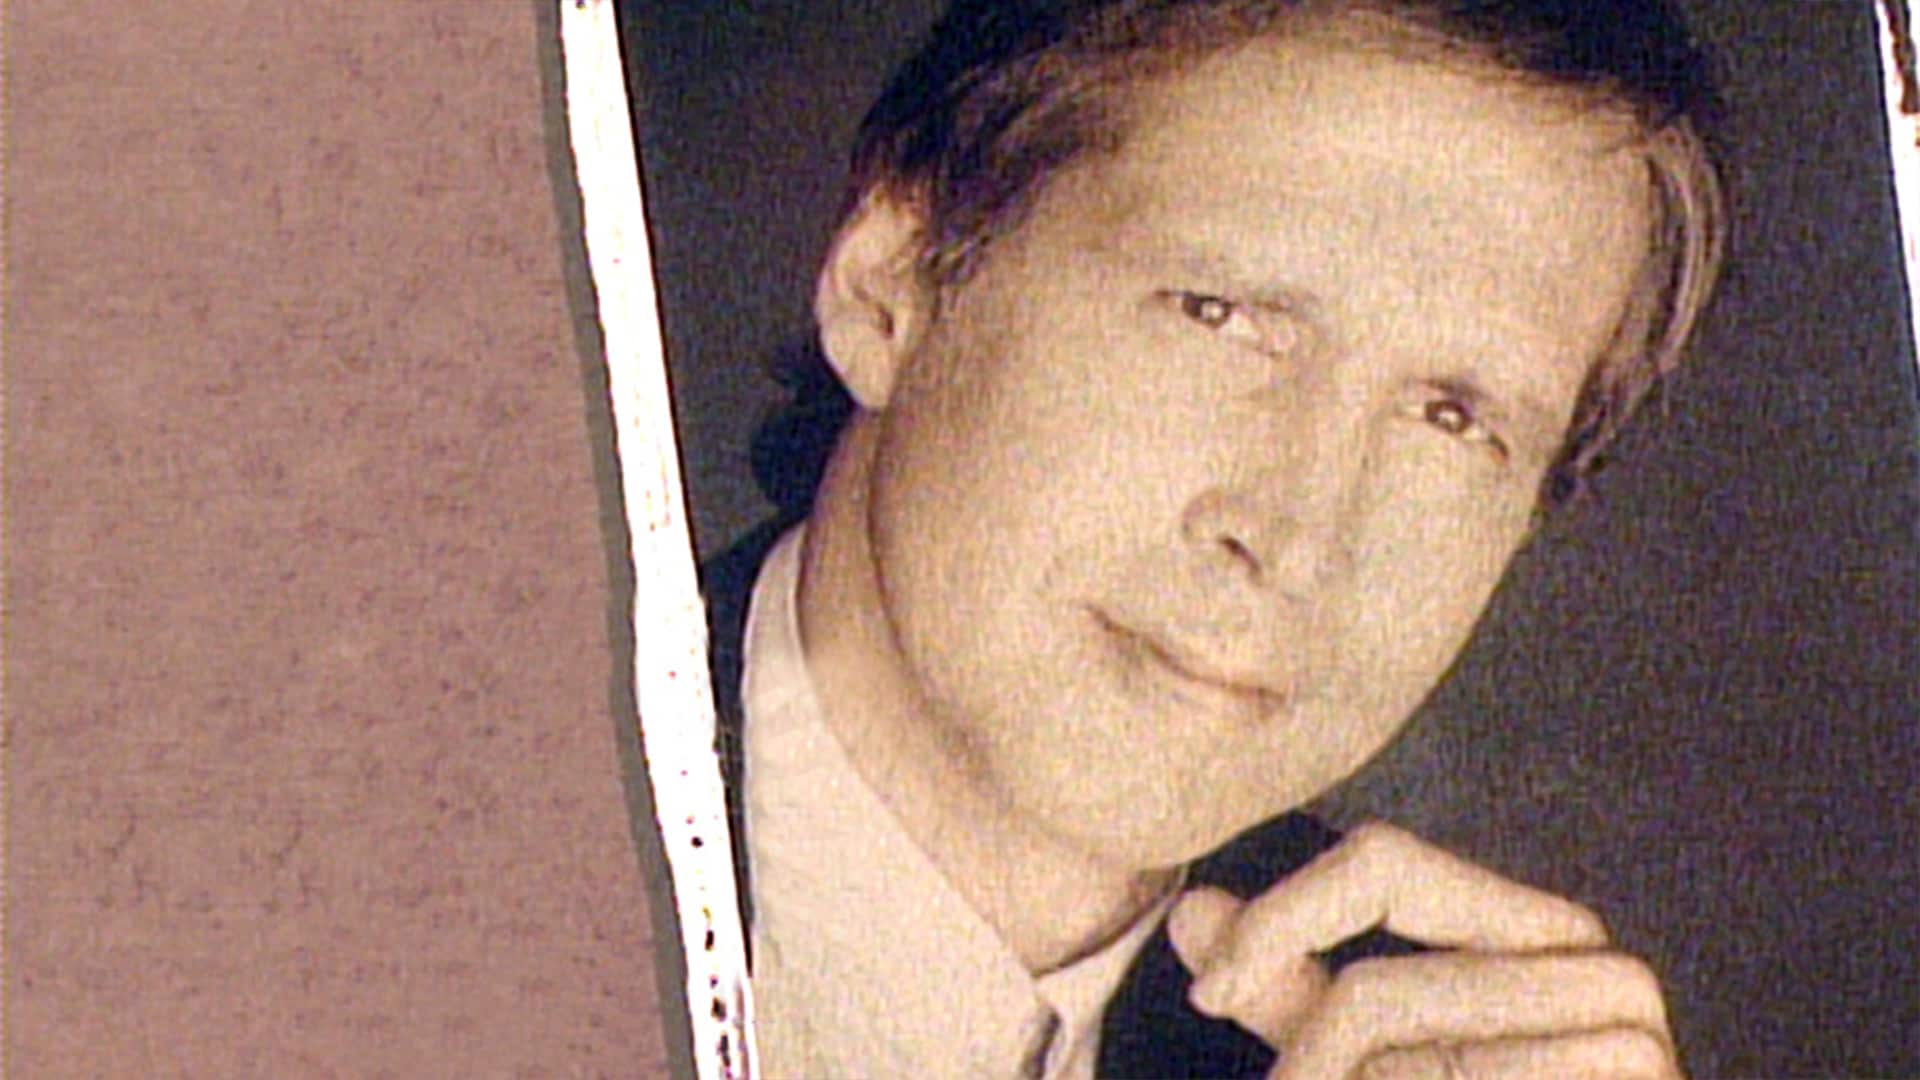 Chevy Chase: January 18, 1992